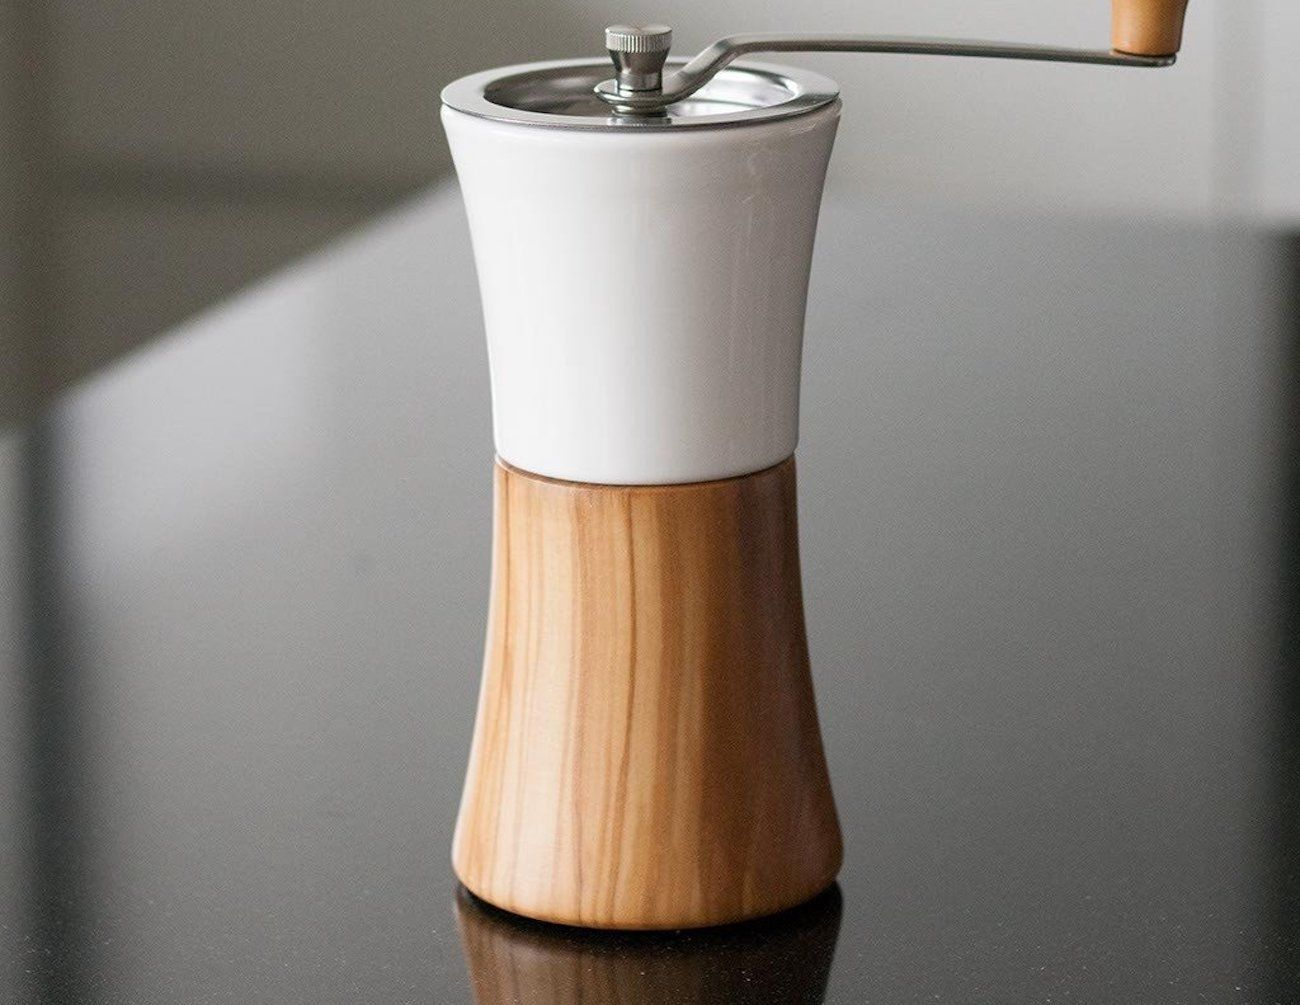 Hario Ceramic and Wood Coffee Grinder » Gadget Flow